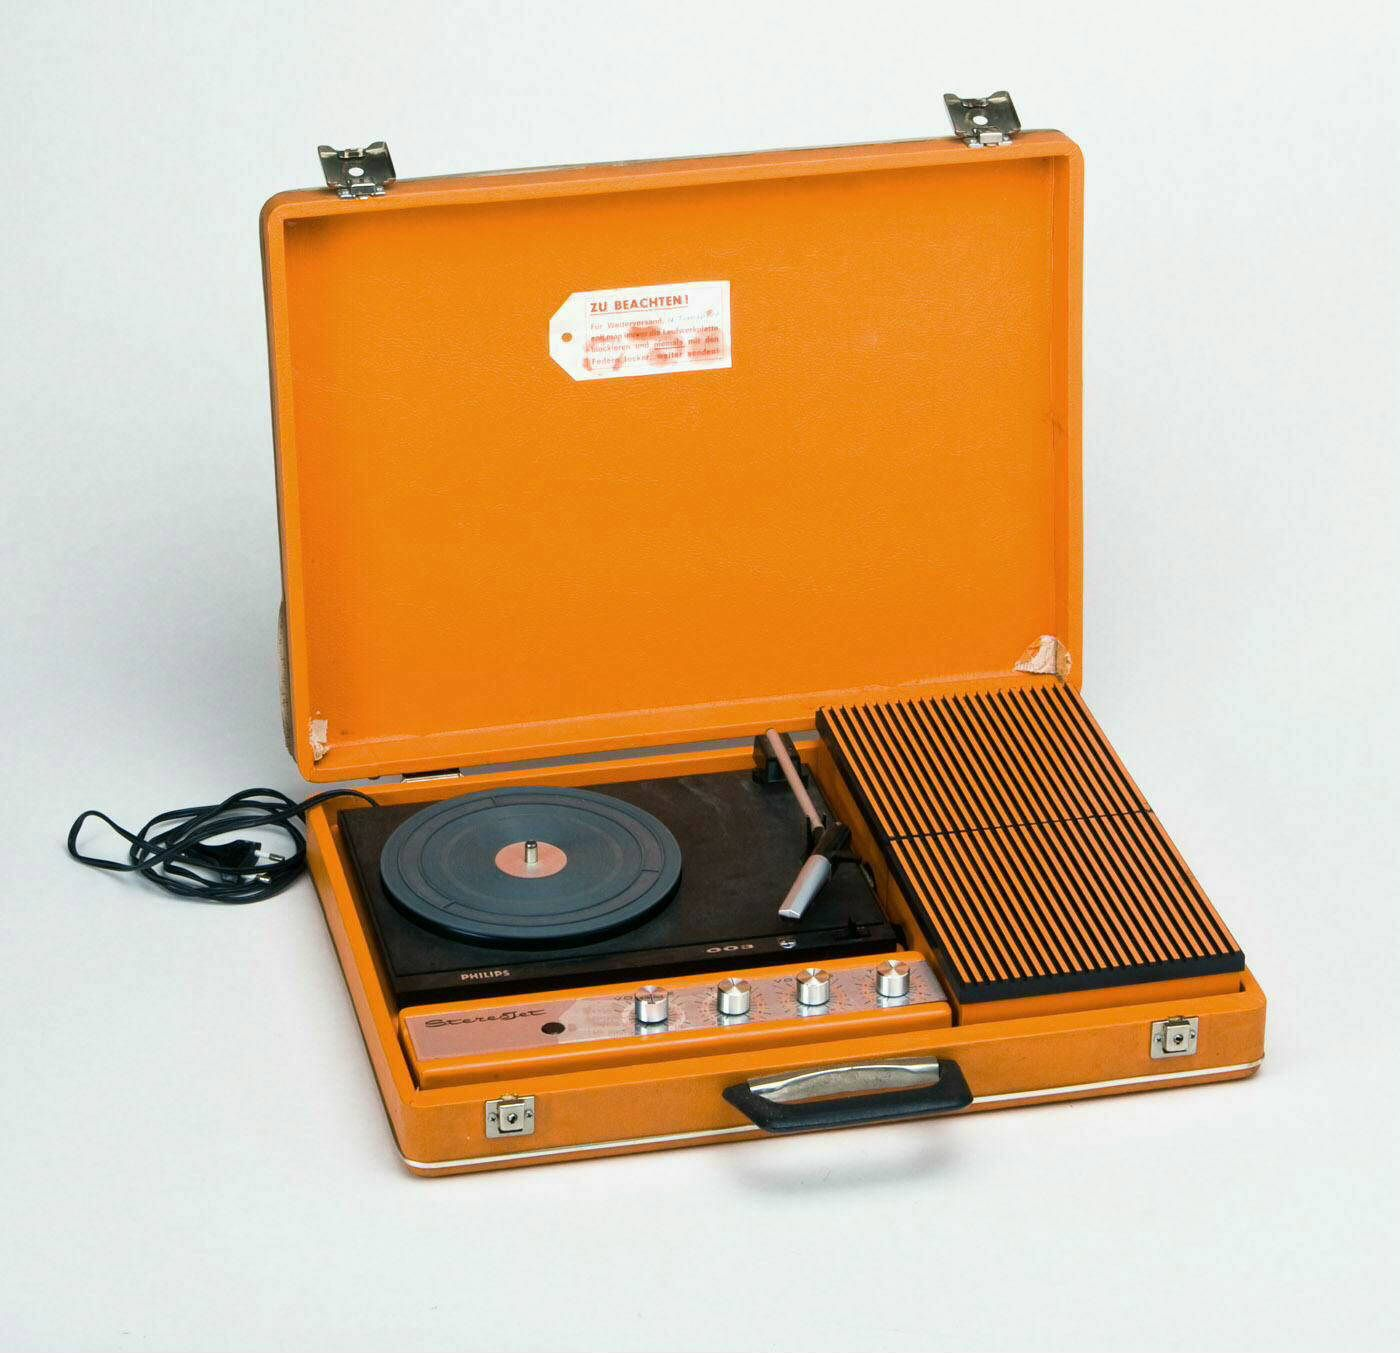 Philips Stereo Jet 003 Portable Record Player 1973